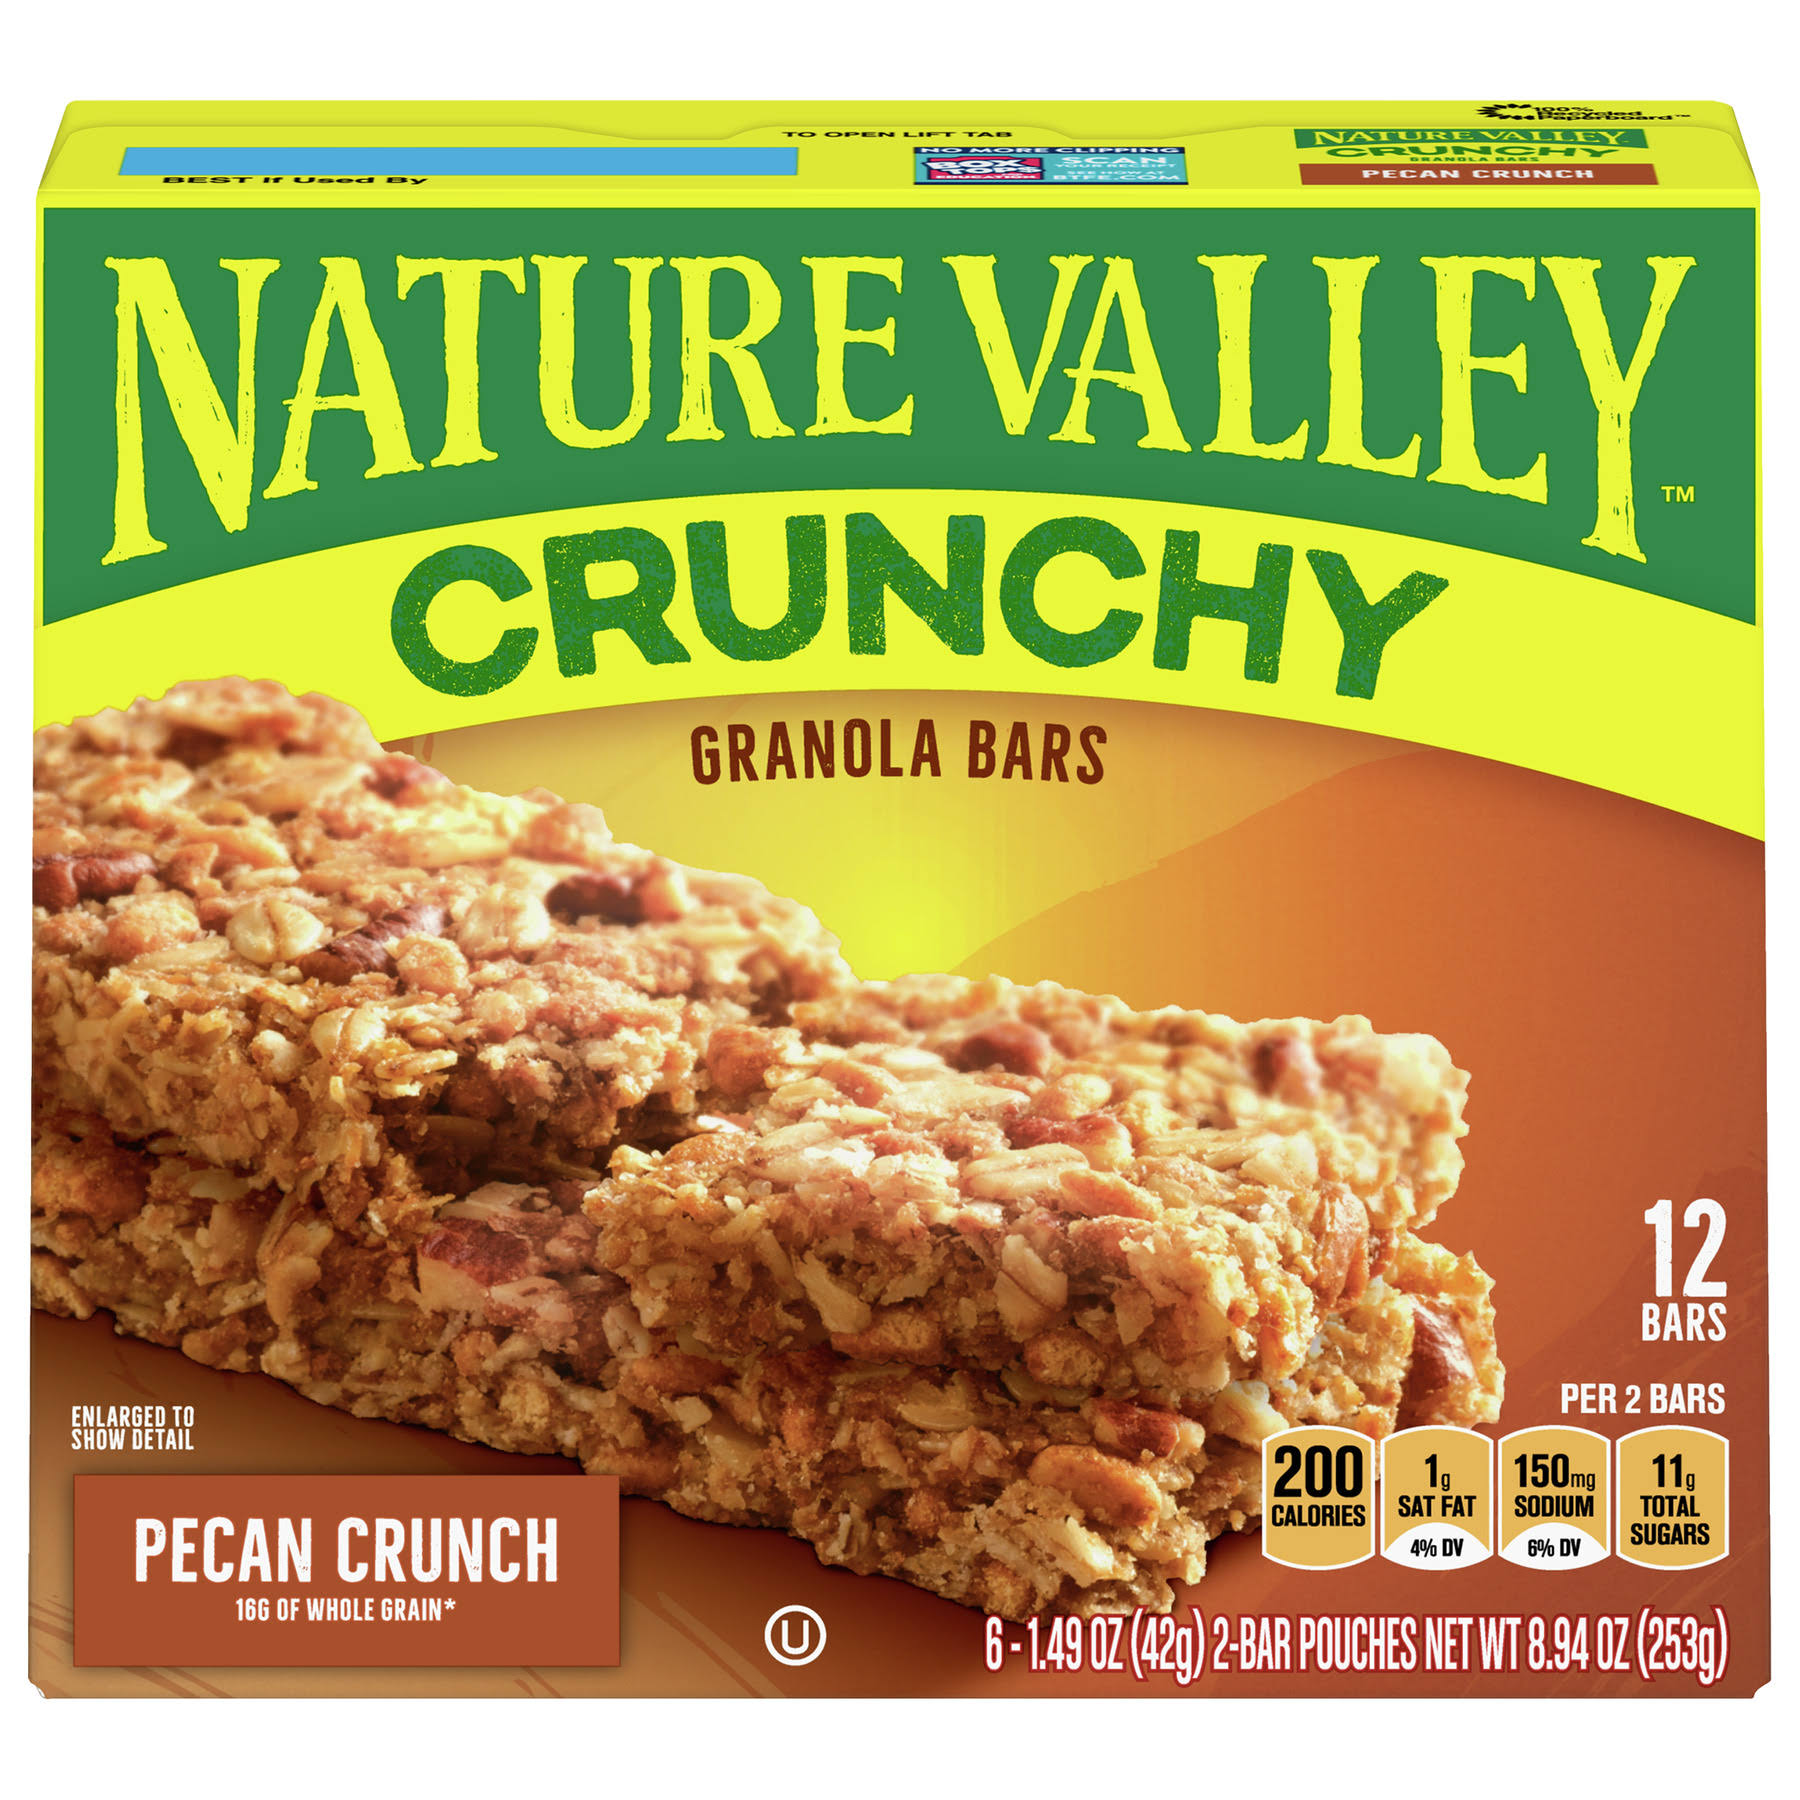 Nature Valley Crunchy Granola Bars - Pecan Crunch, 19.94oz, 12ct